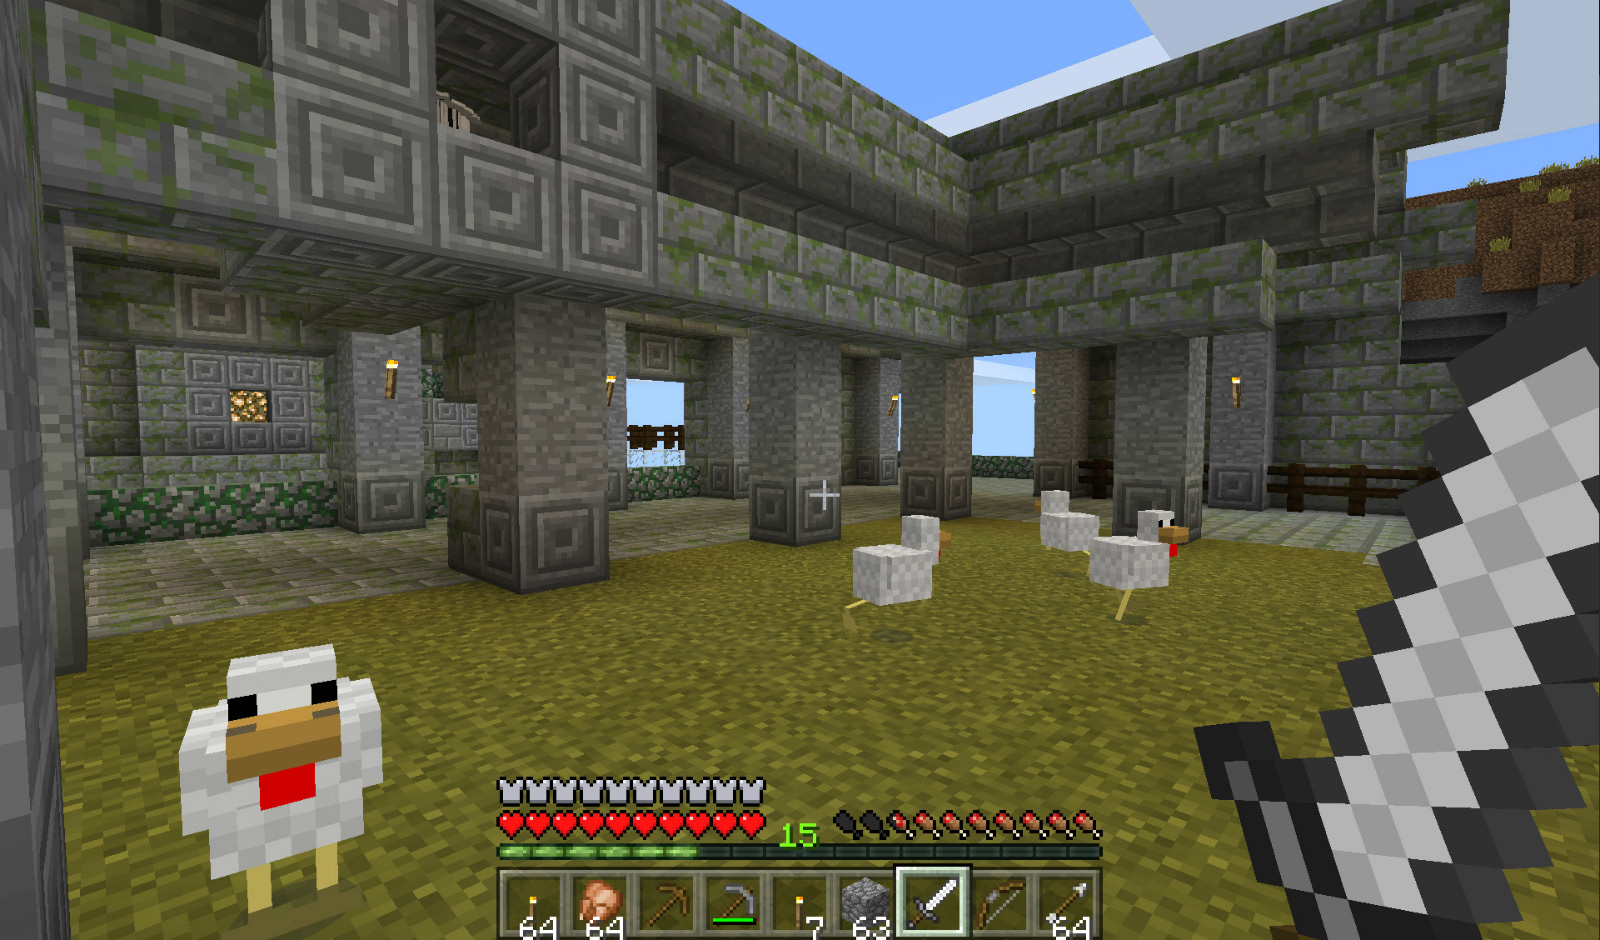 Play 'Minecraft' on the Oculus Rift today